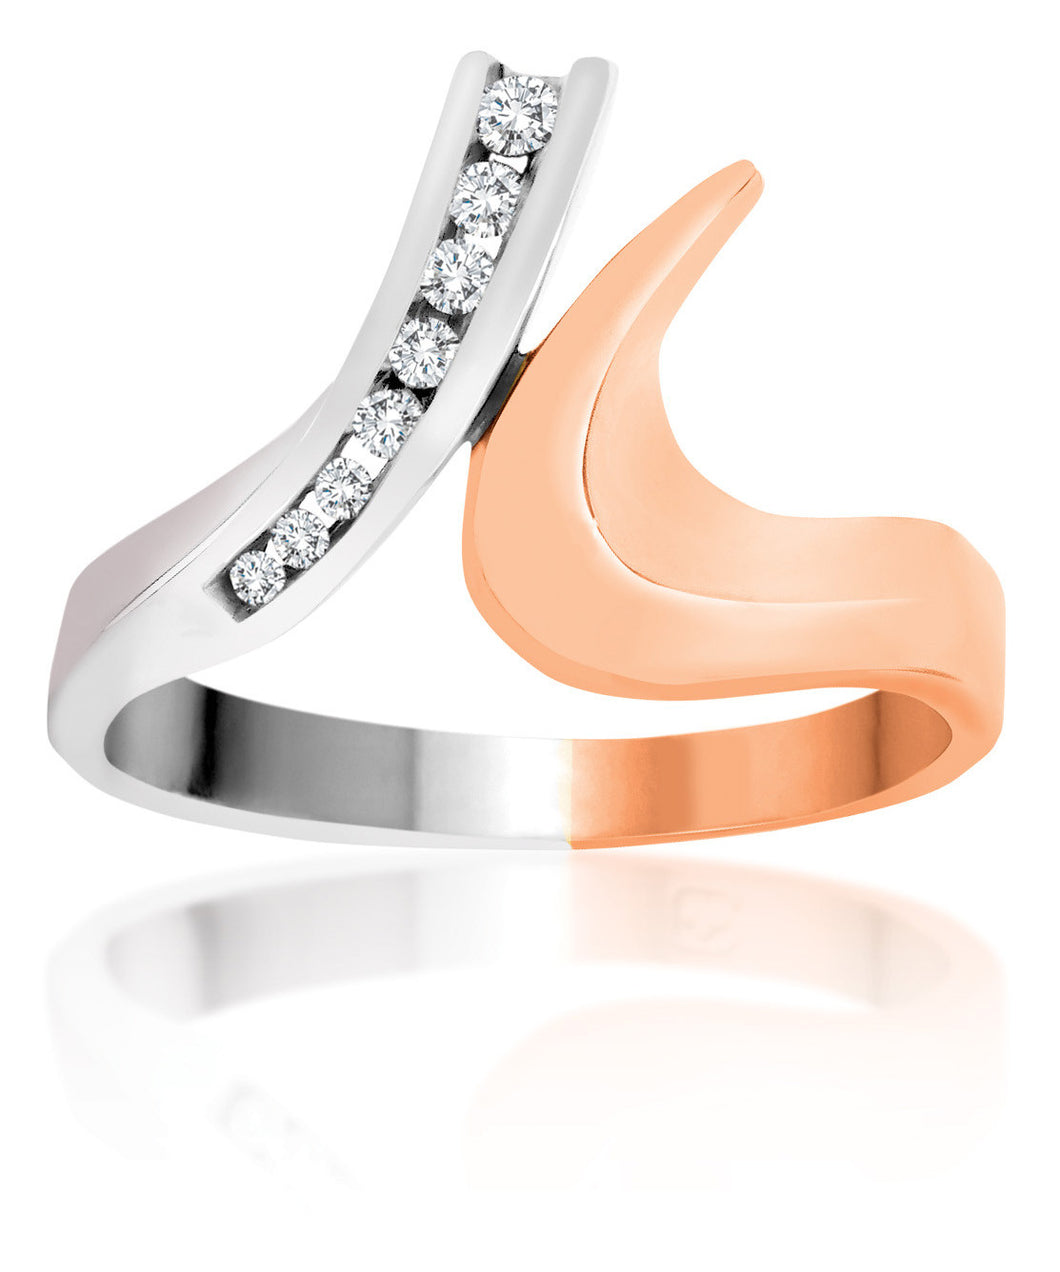 10Kt Ladies White and Rose Gold Diamond Swan Neck Ring